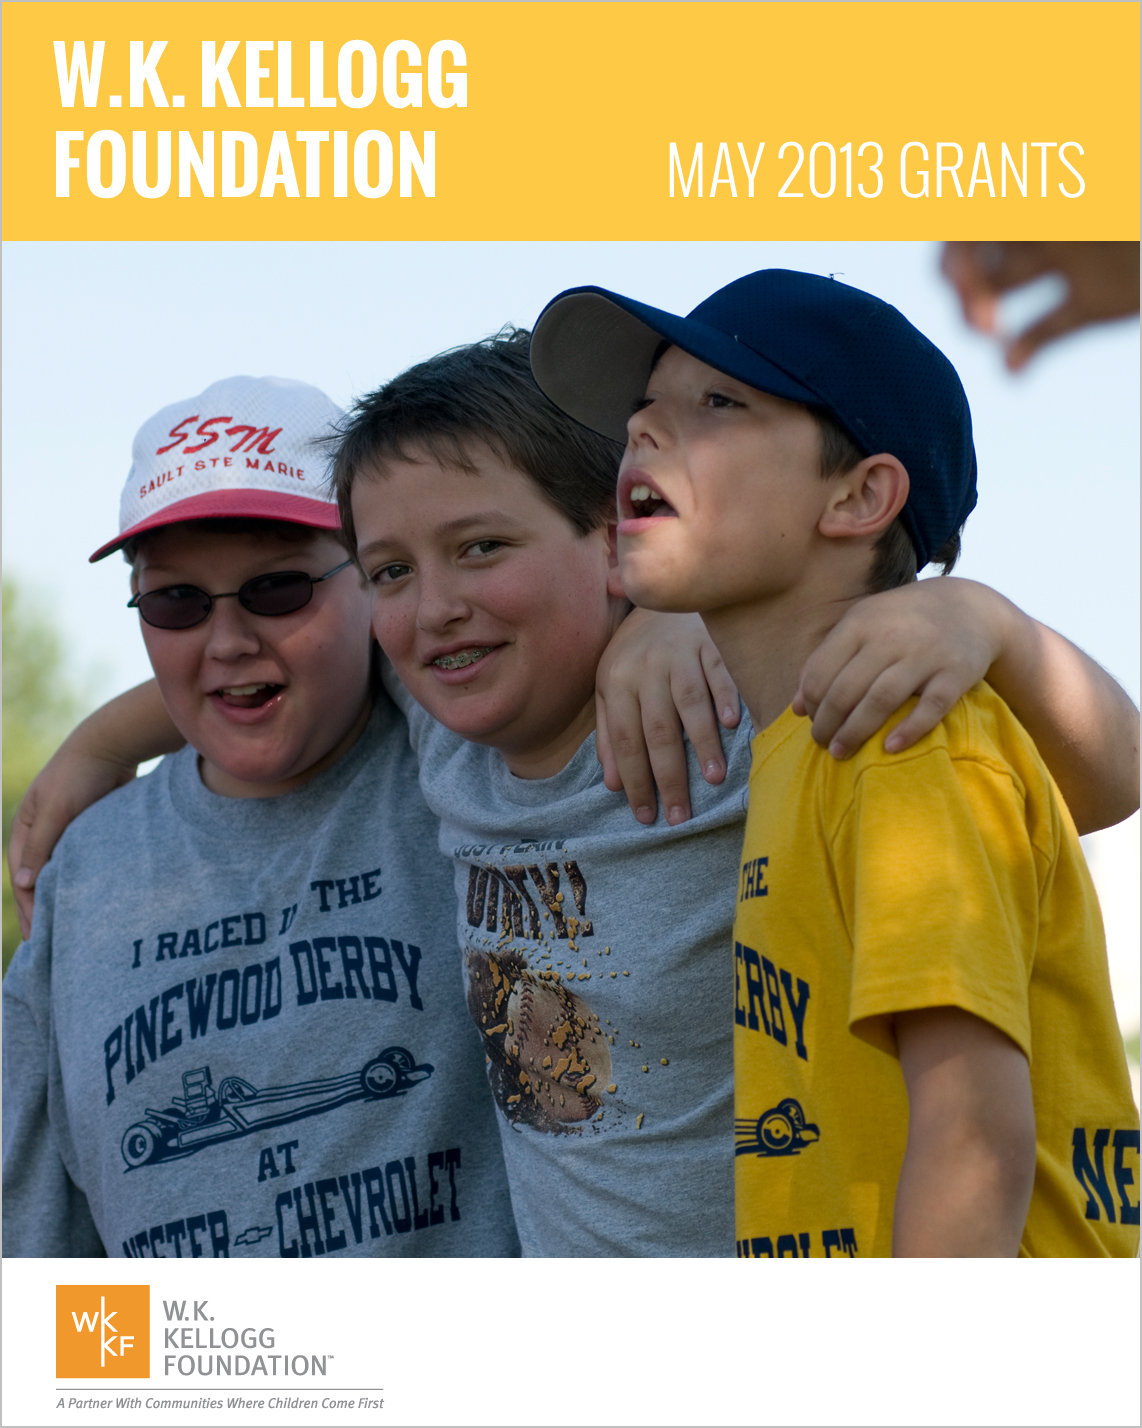 W.K. Kellogg Foundation Grants - May 2013